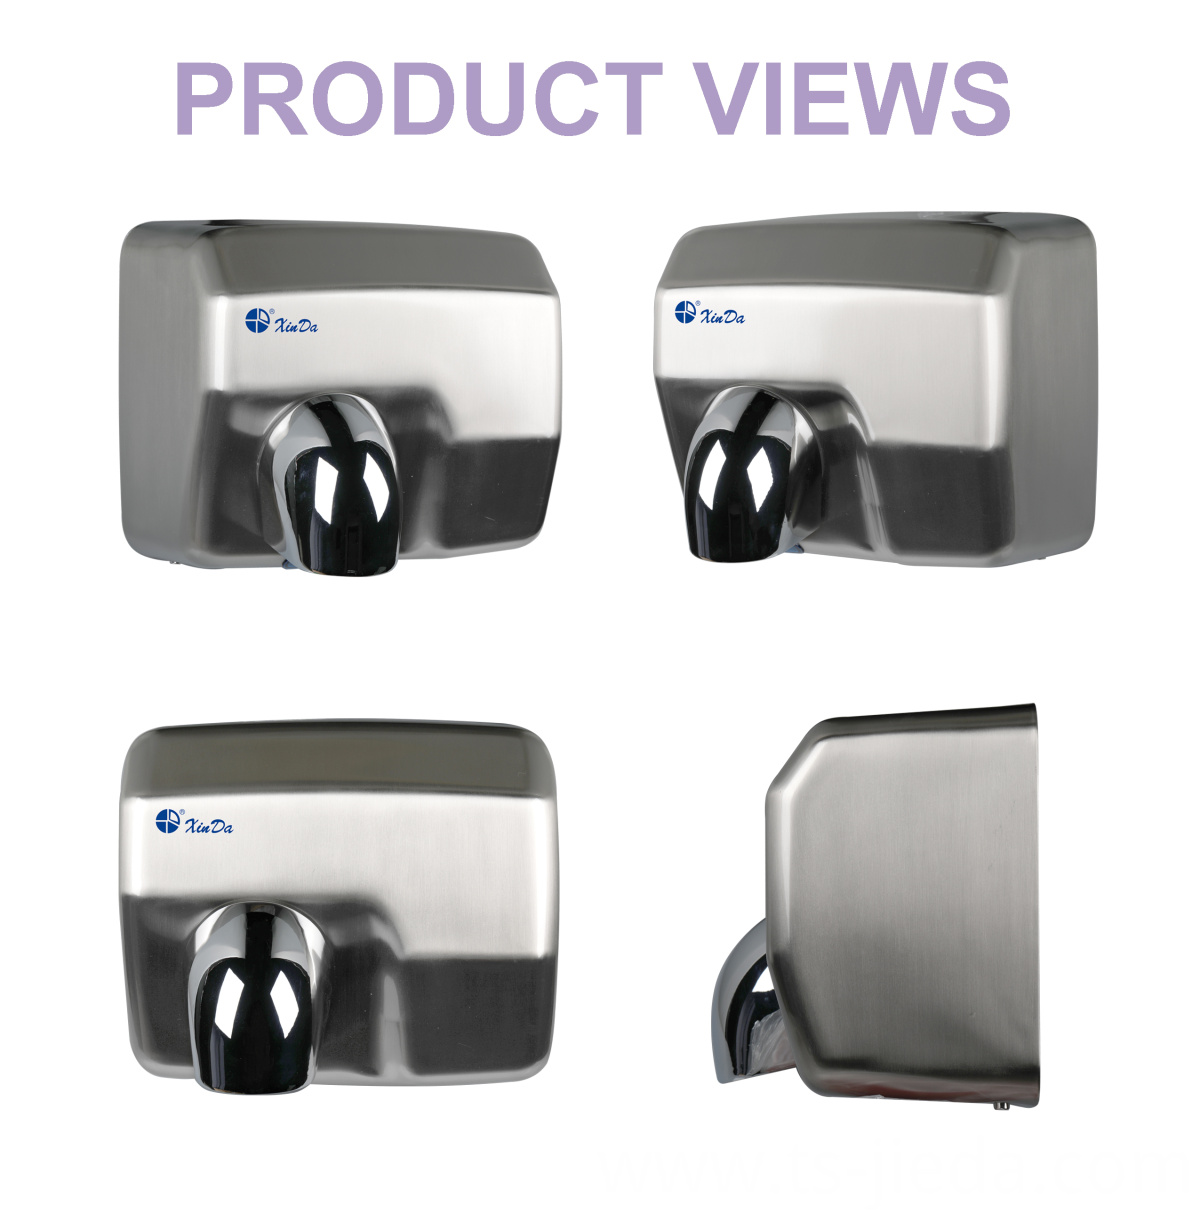 Auto hand dryer with 360°revolving nozzle